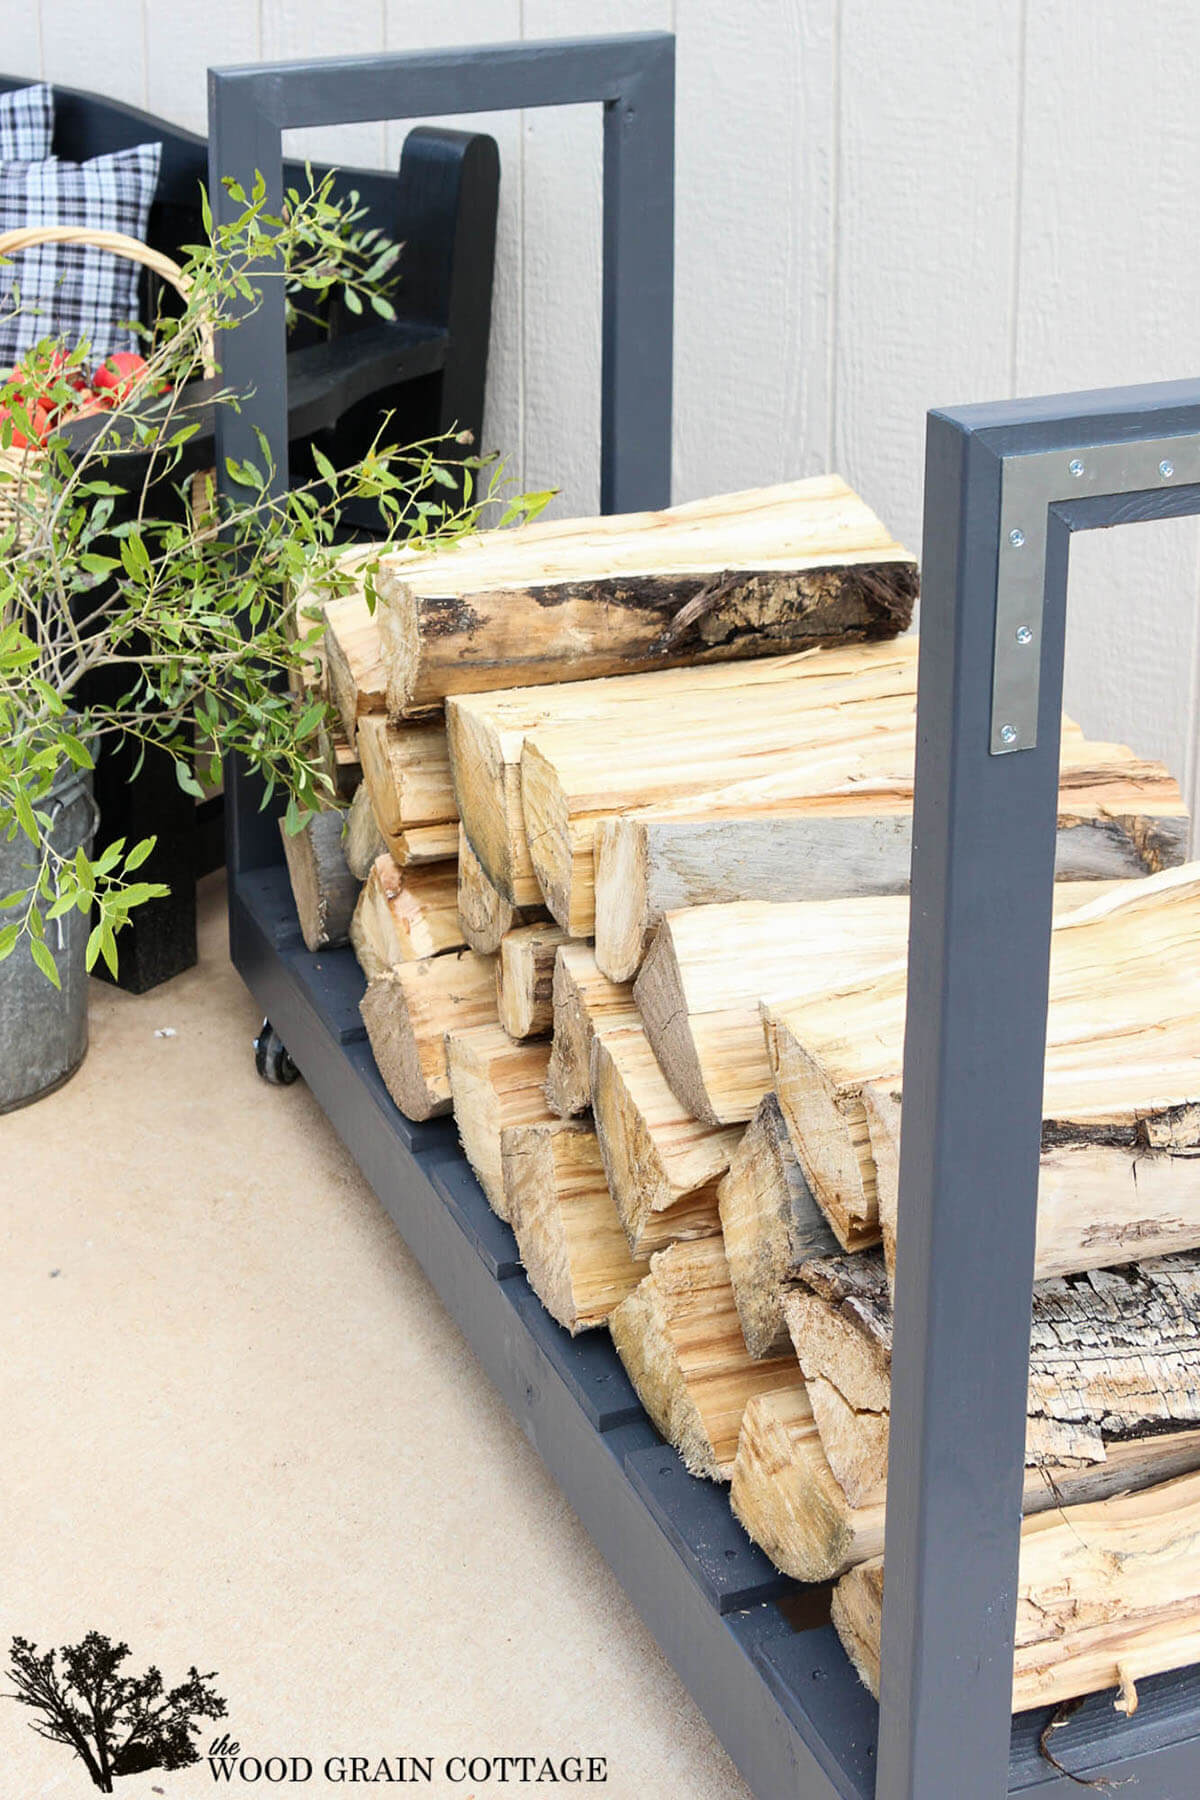 A Movable Firewood Cart for the Outdoors